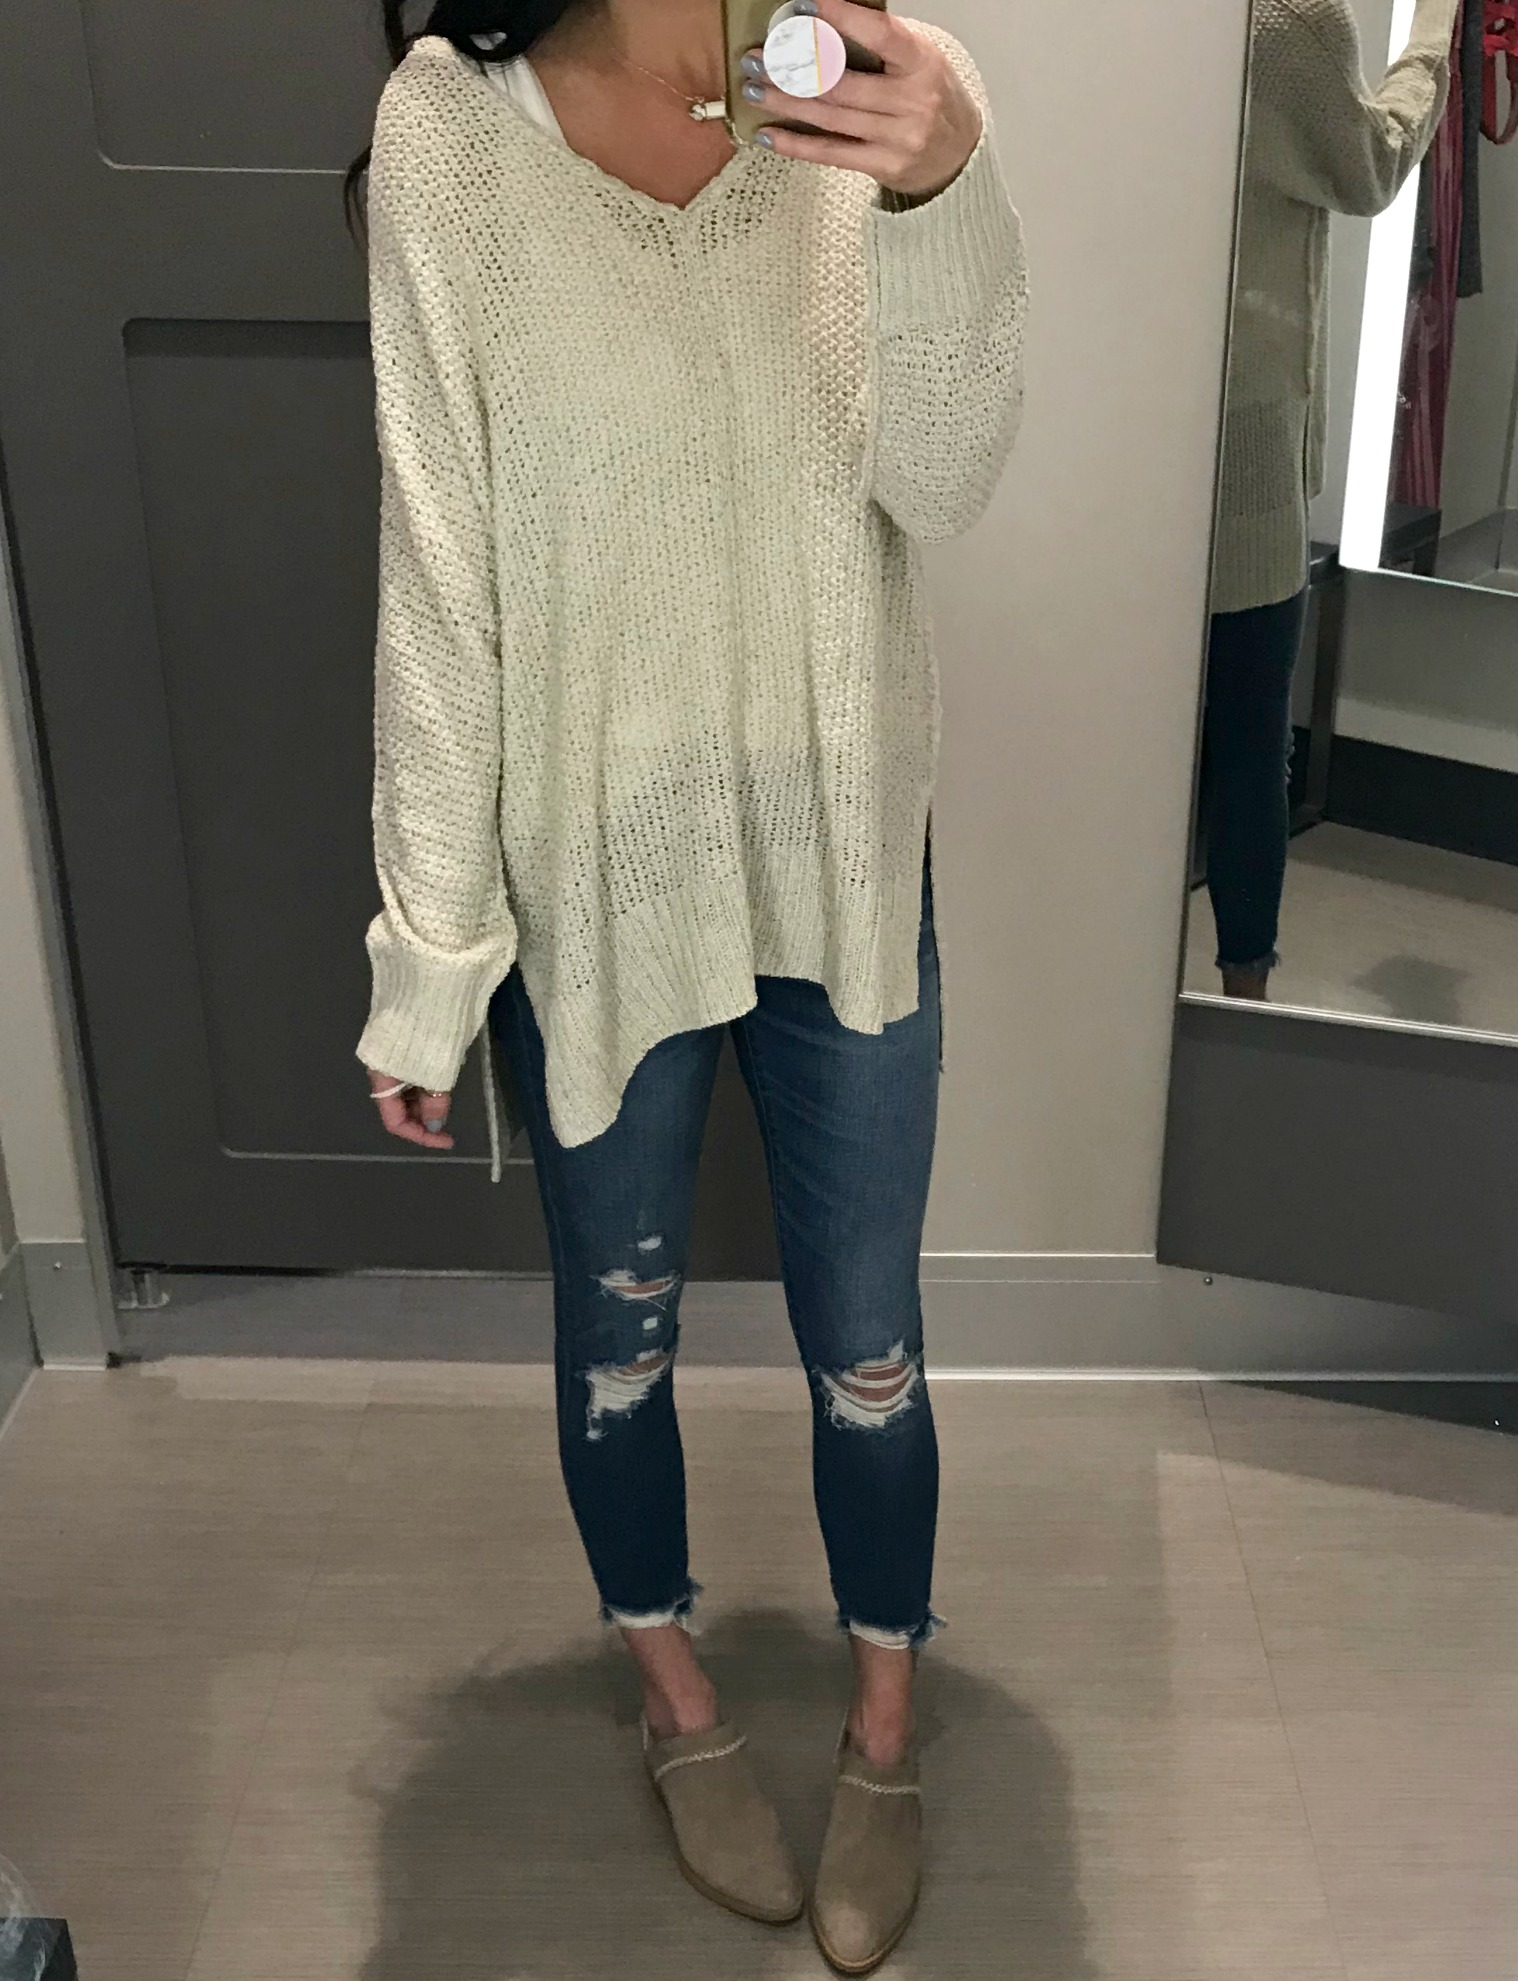 Sweater, jeans, booties